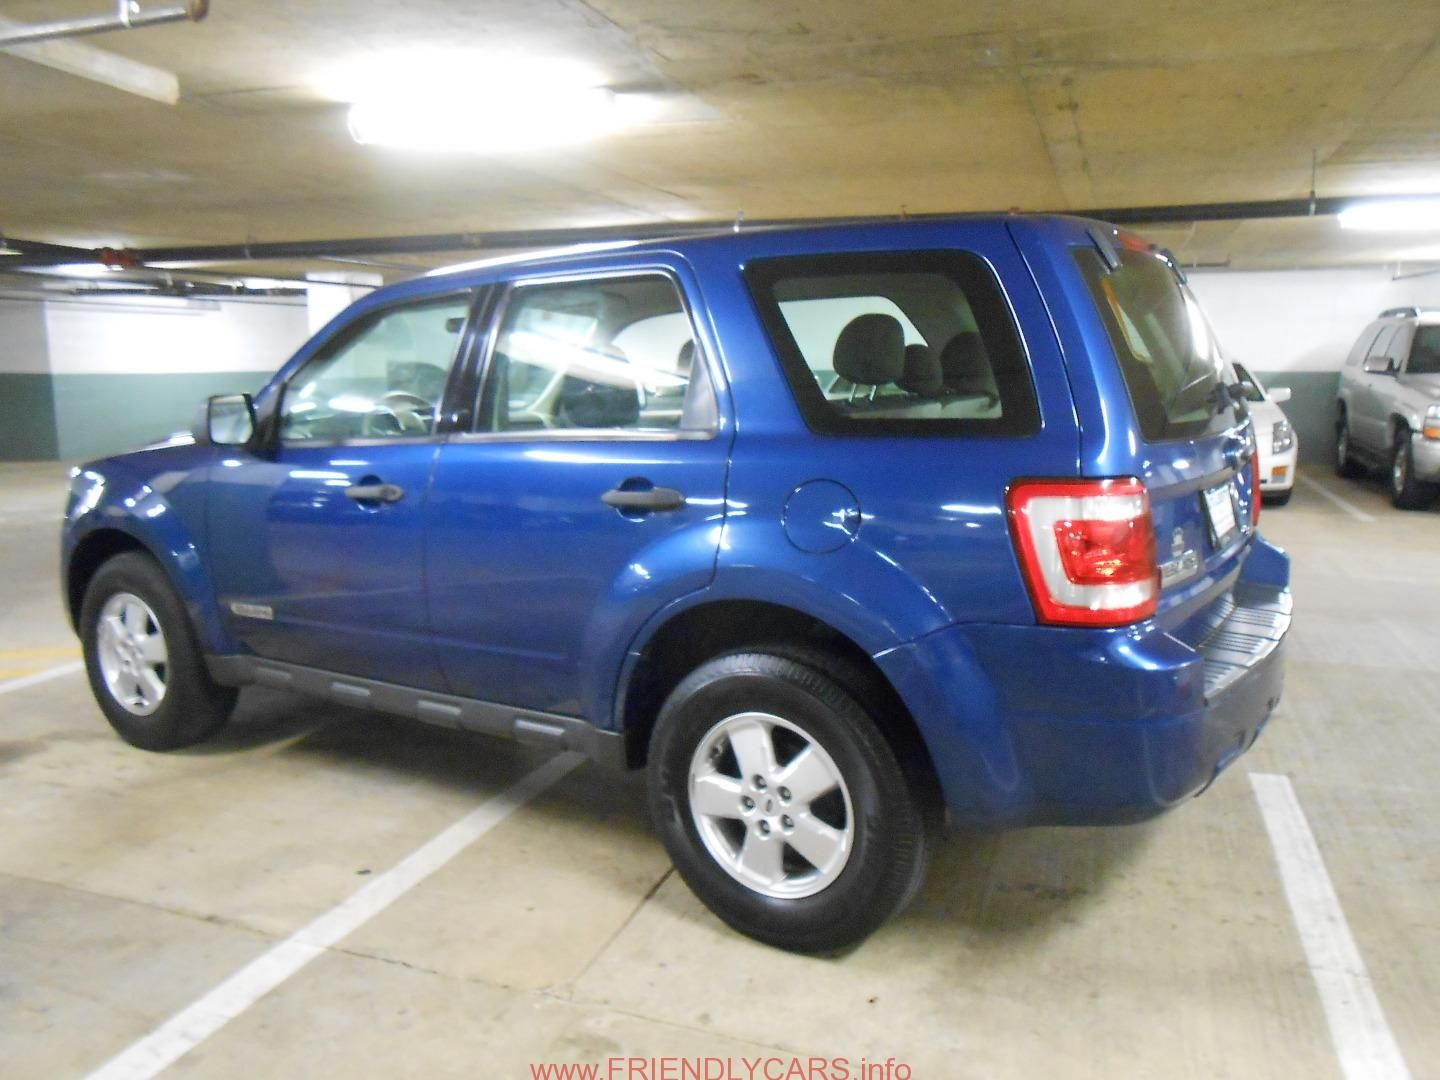 Awesome Ford Escape 2008 Blue Car Images Hd 2008 Ford Escape Xls